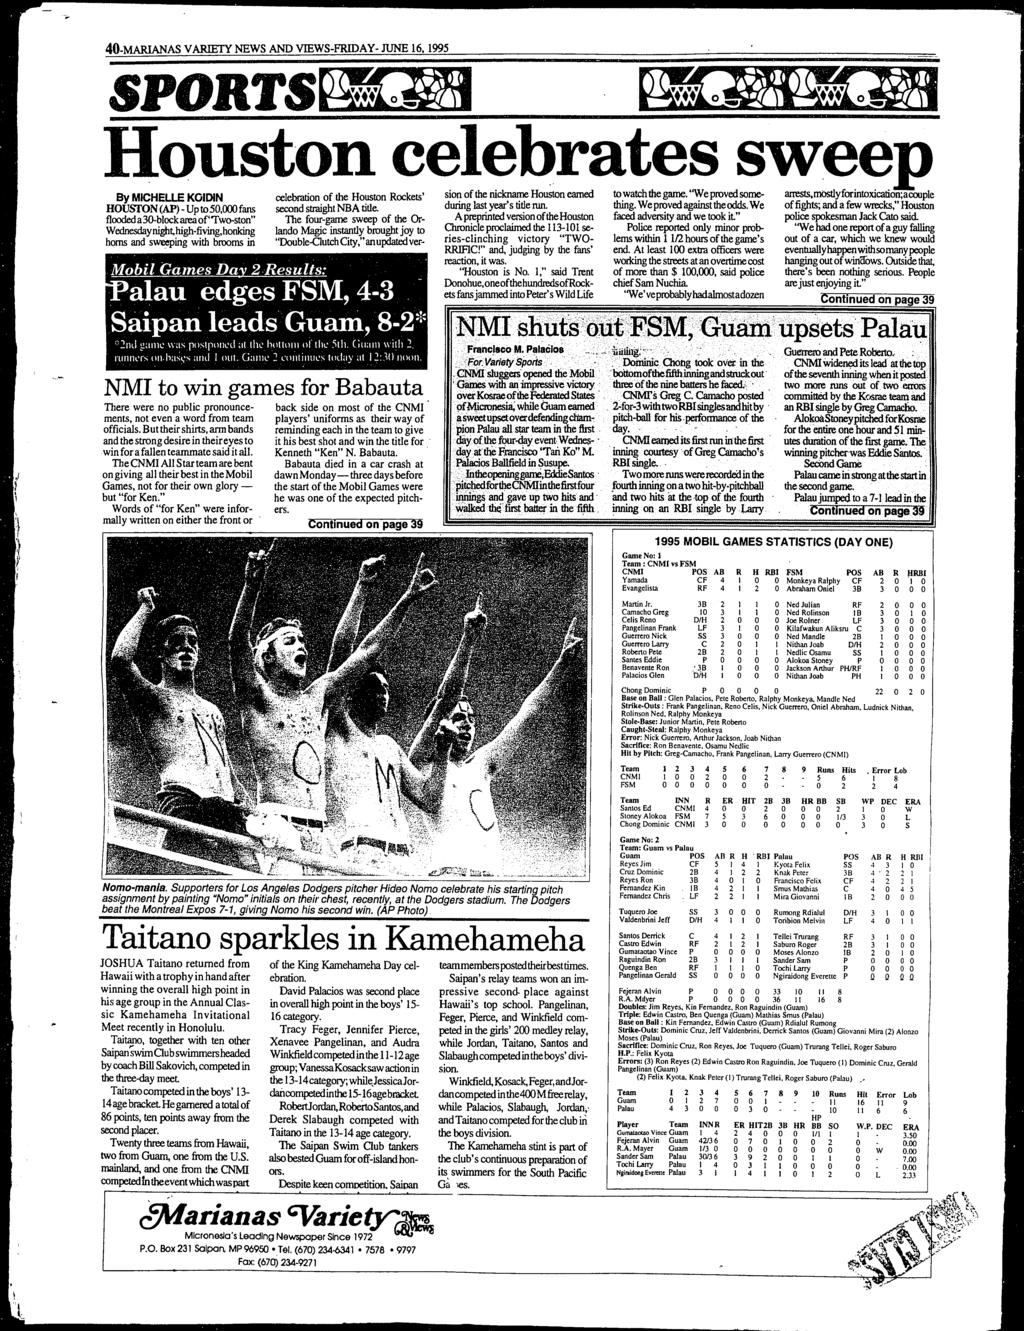 40-MARANAS VARETY NEWS AND VEWS-FRDAY- JUNE 16, 1995 SPORTSPALM M 01AW.0M Houston celebrates sweep By MCHELLE KODN celebration of the Houston Rockets' sio~ of the nic~ Houston earned to_watchthegame.